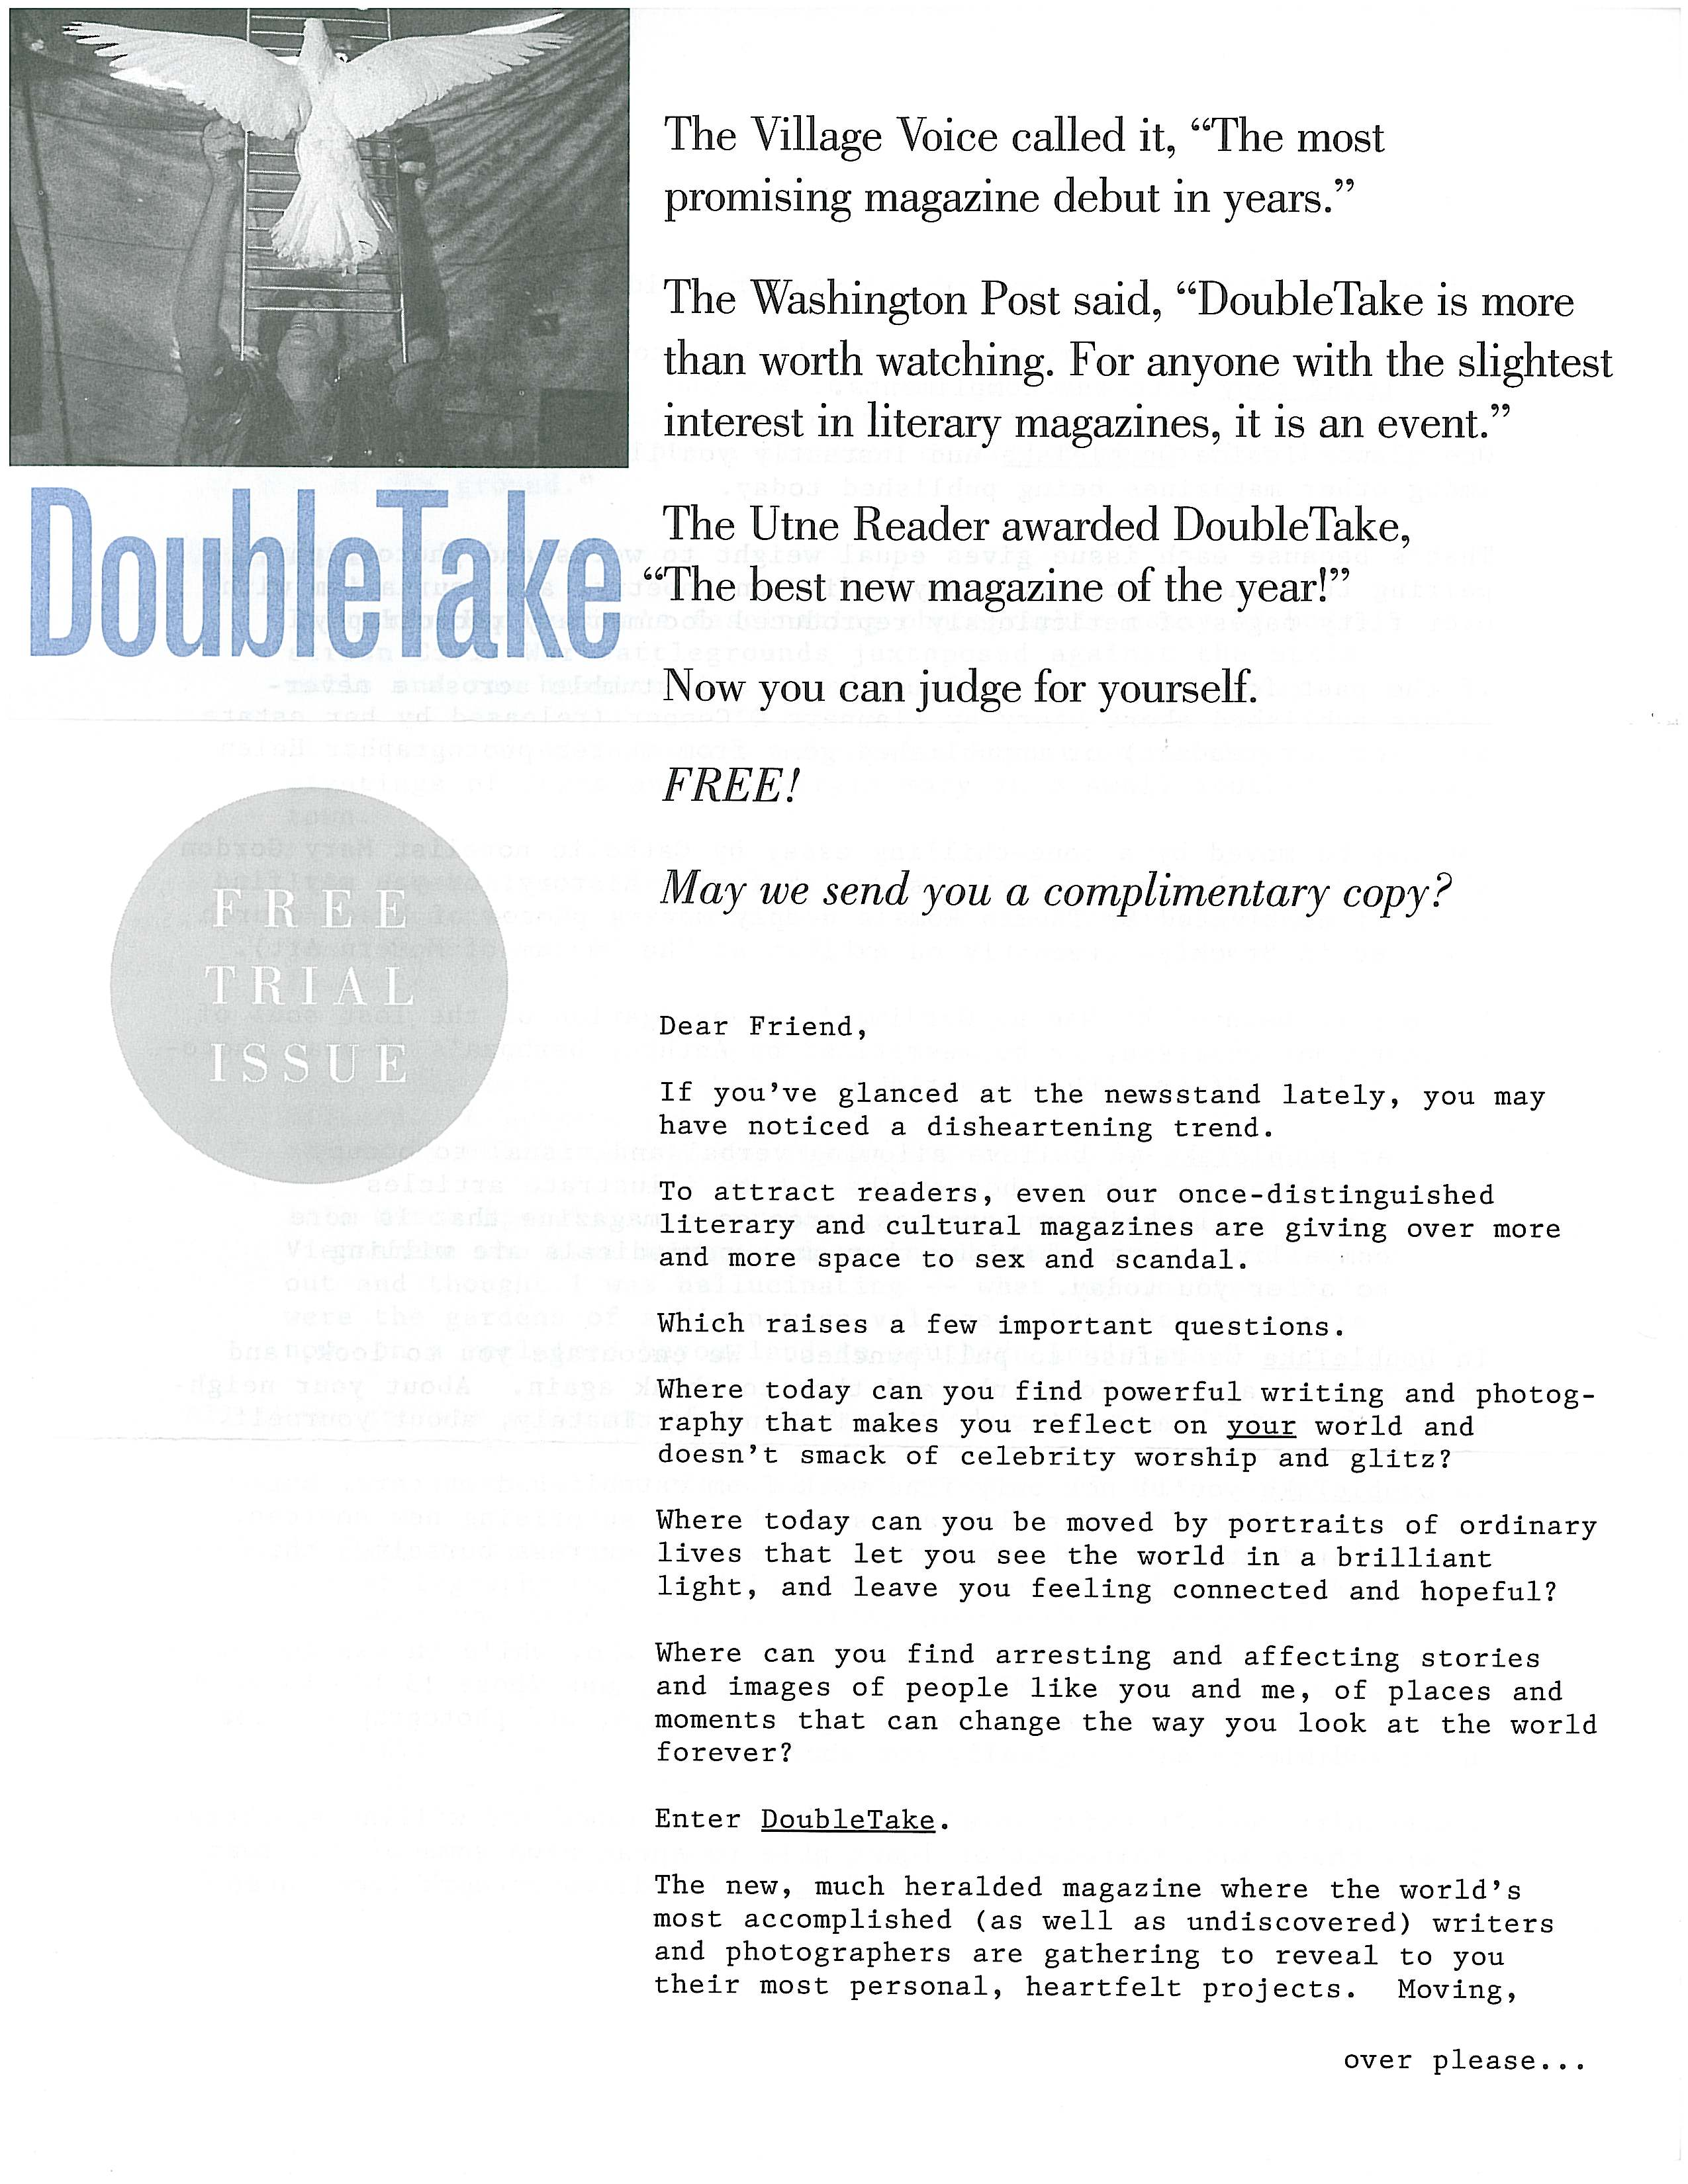 image of Doubletake direct mail sales letter page 1